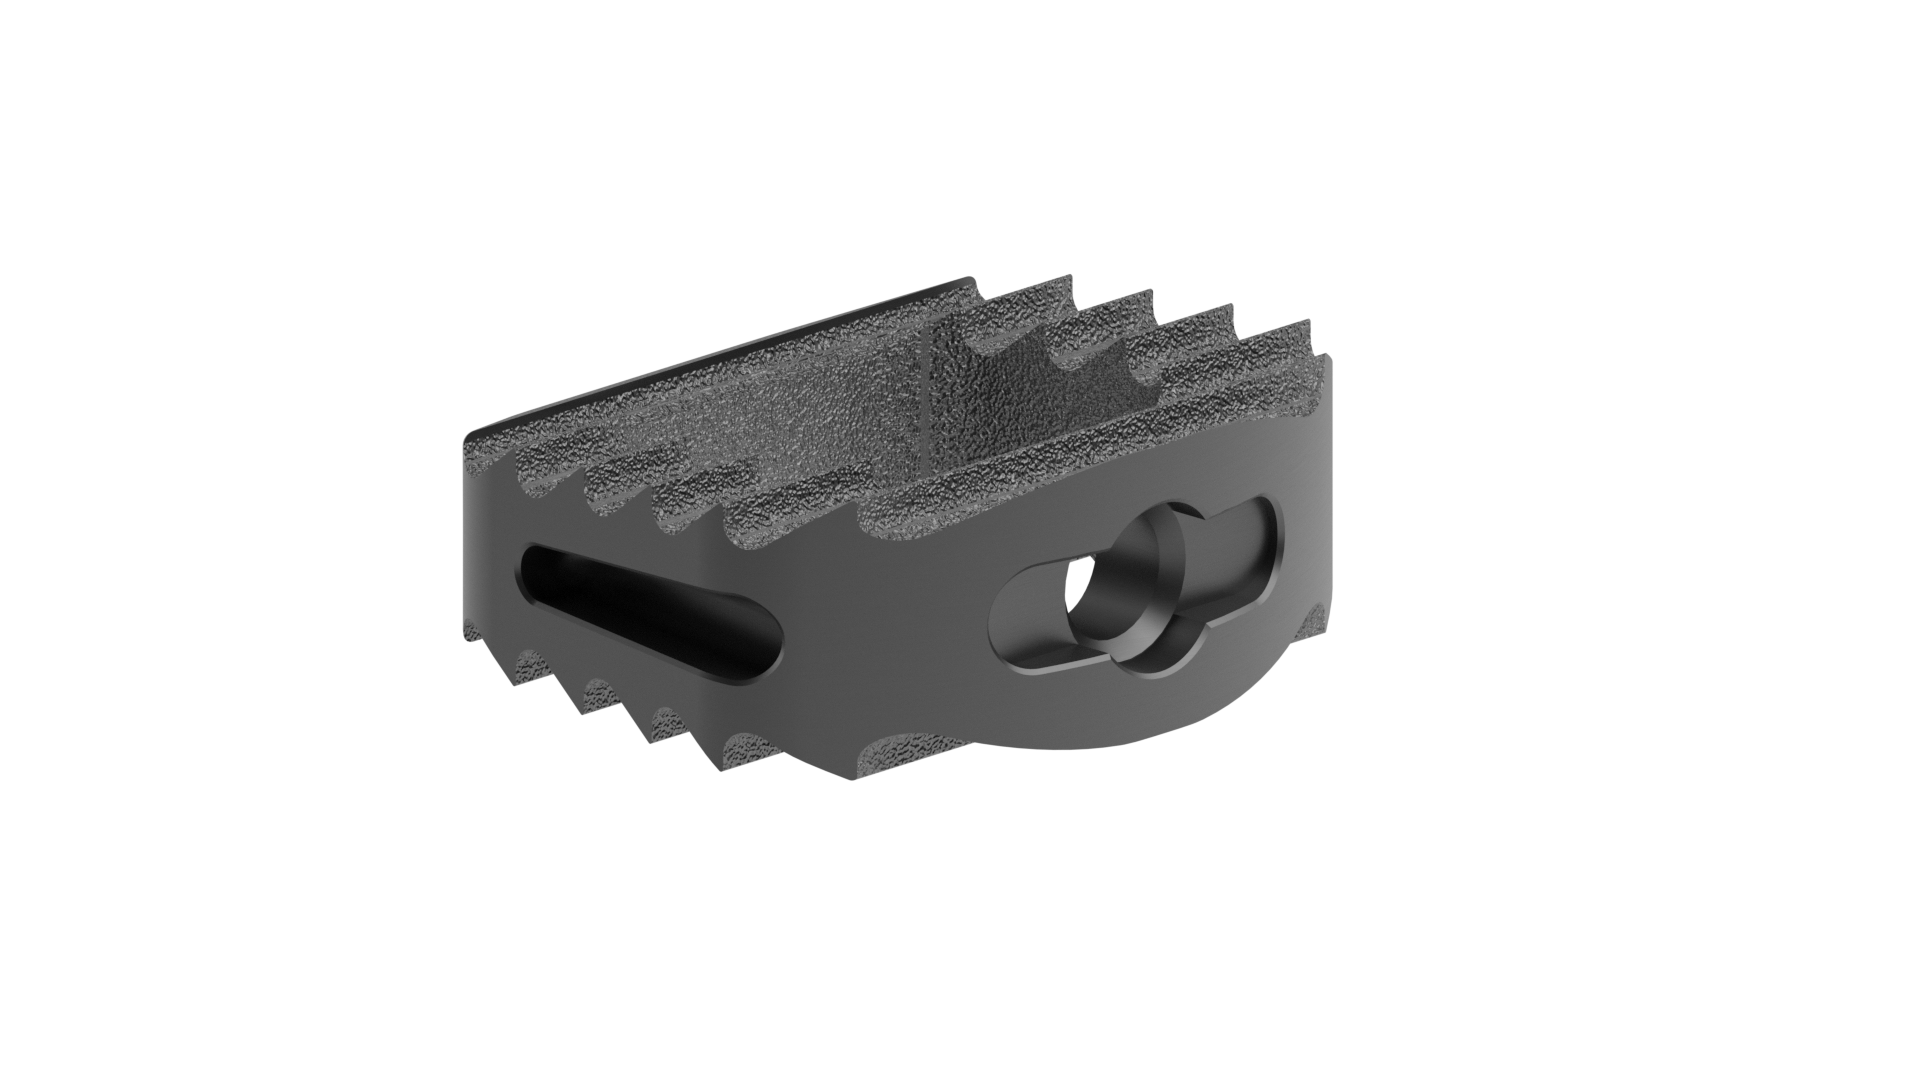 machined titanium cervical ibfd cage angle shows the side opening and slim nature of the implant